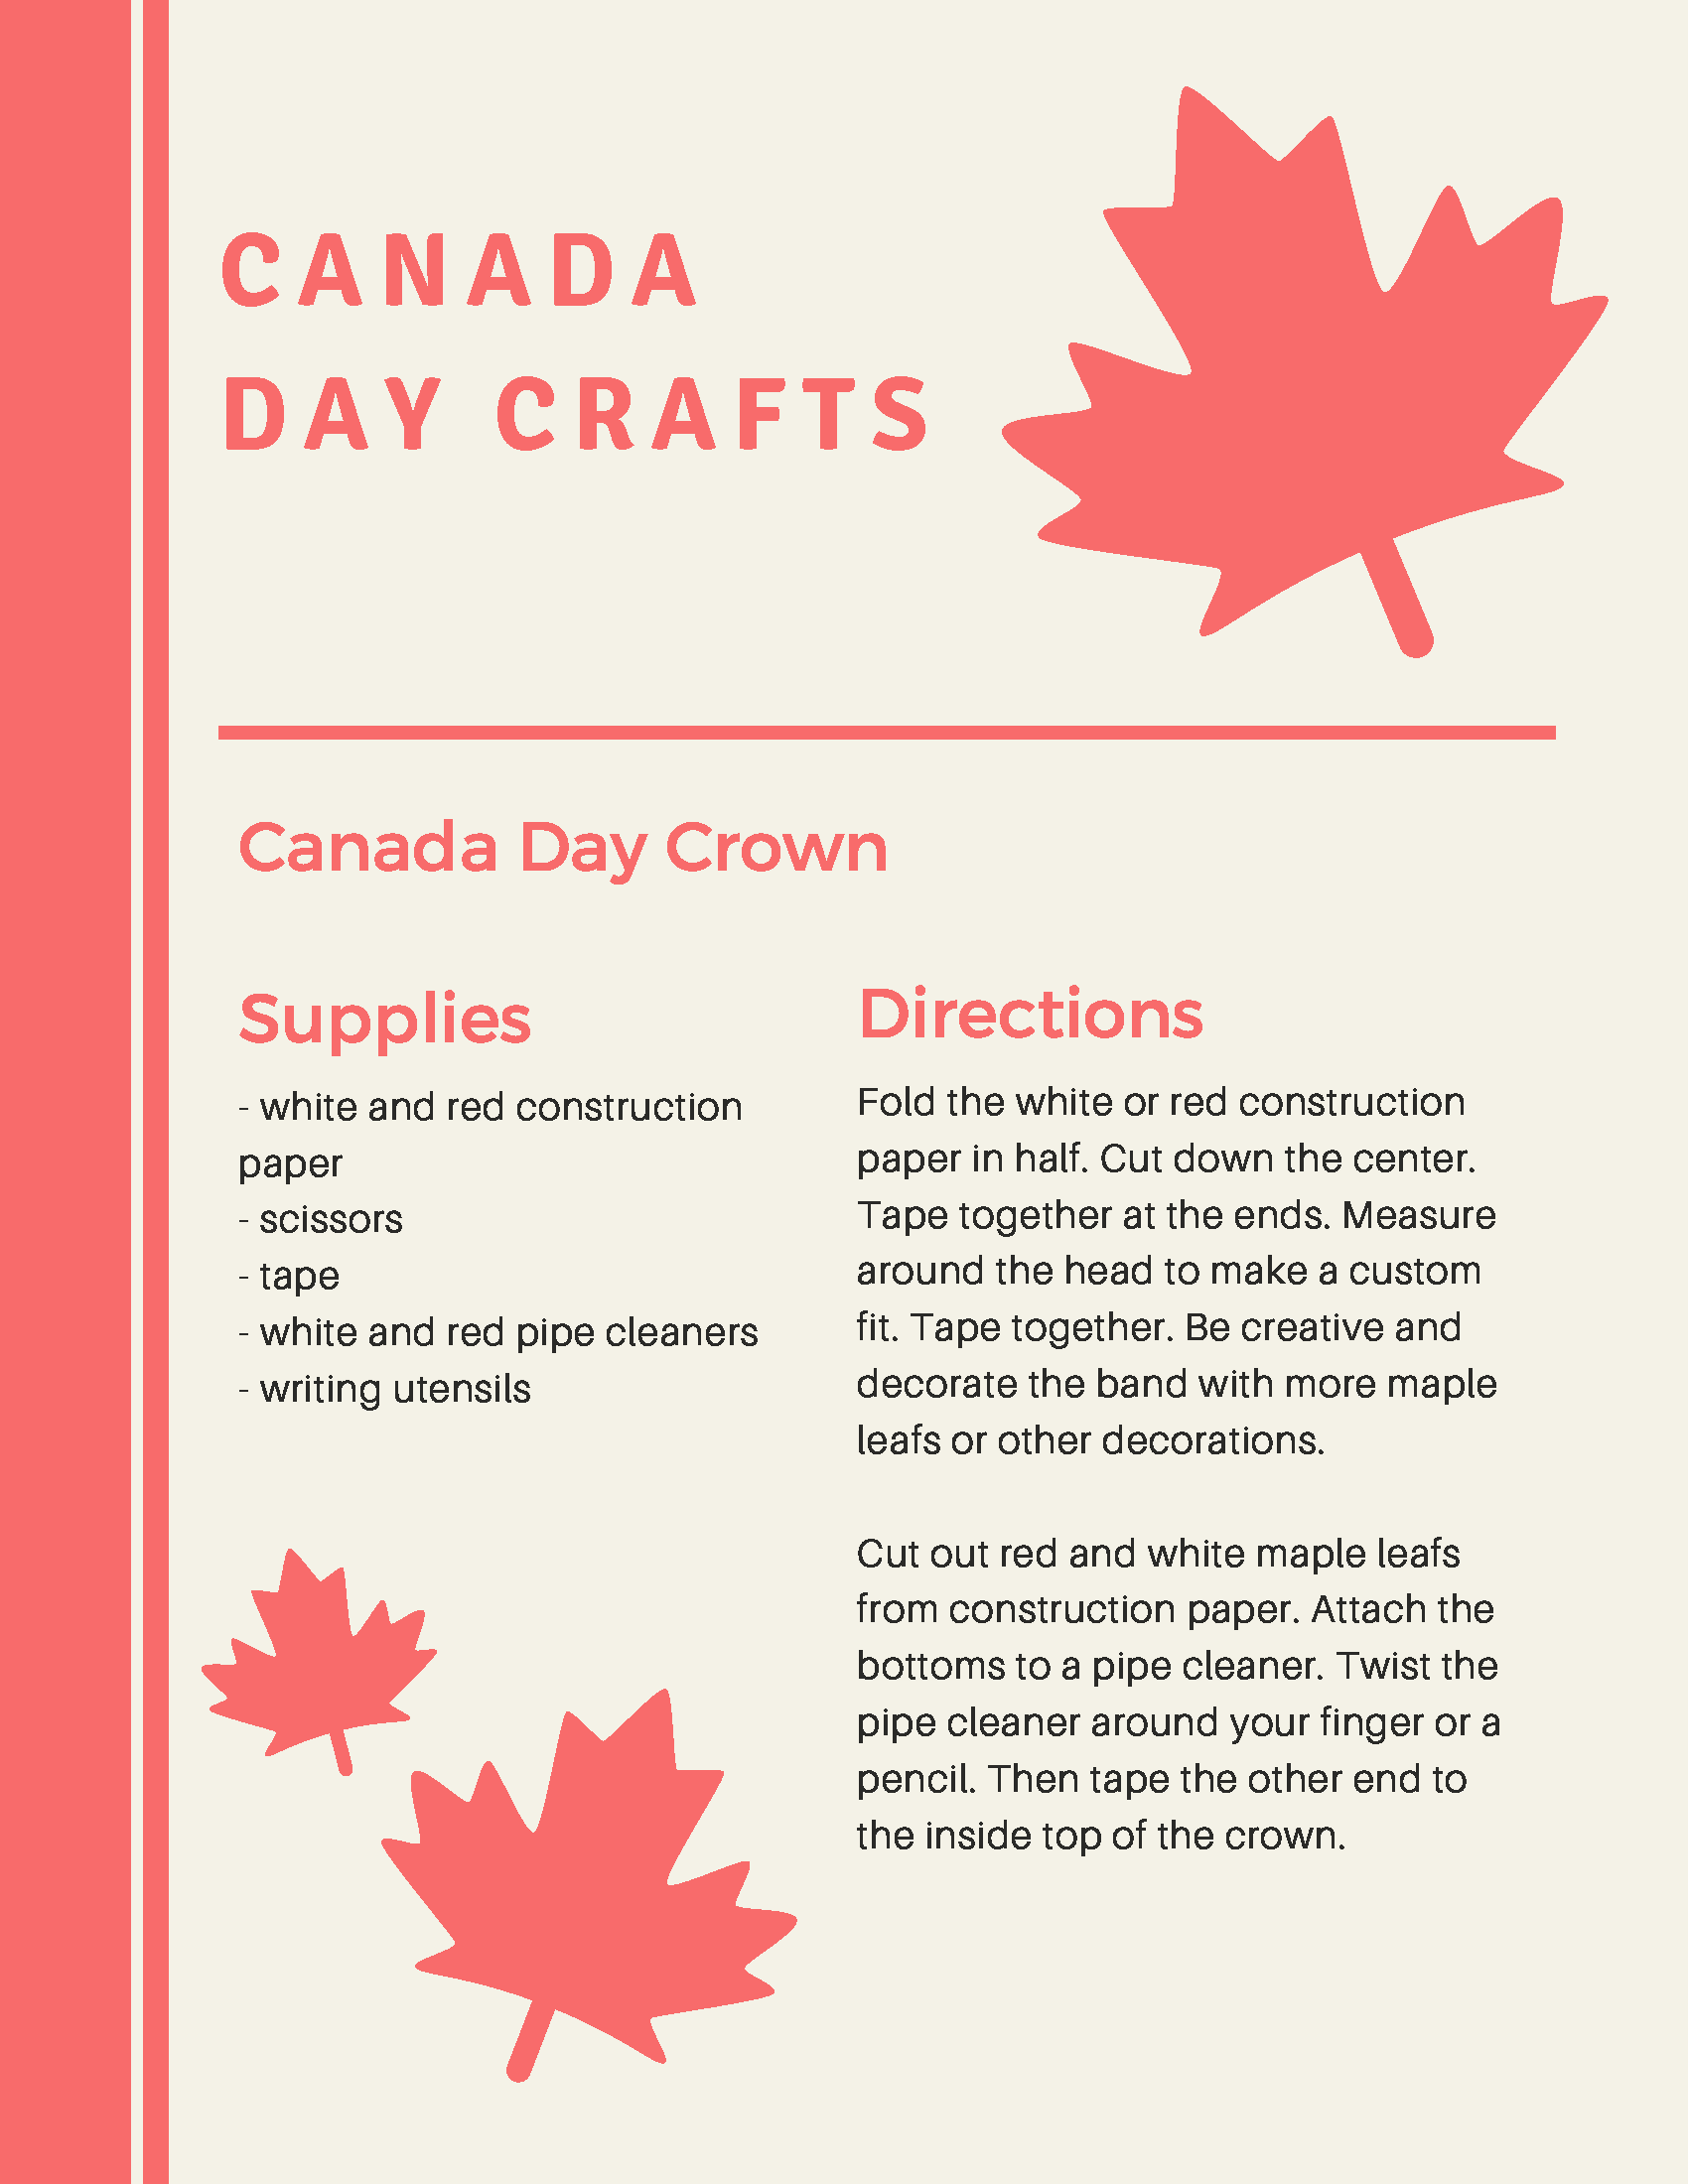 Canada Day Crafts 2020 (2) 2